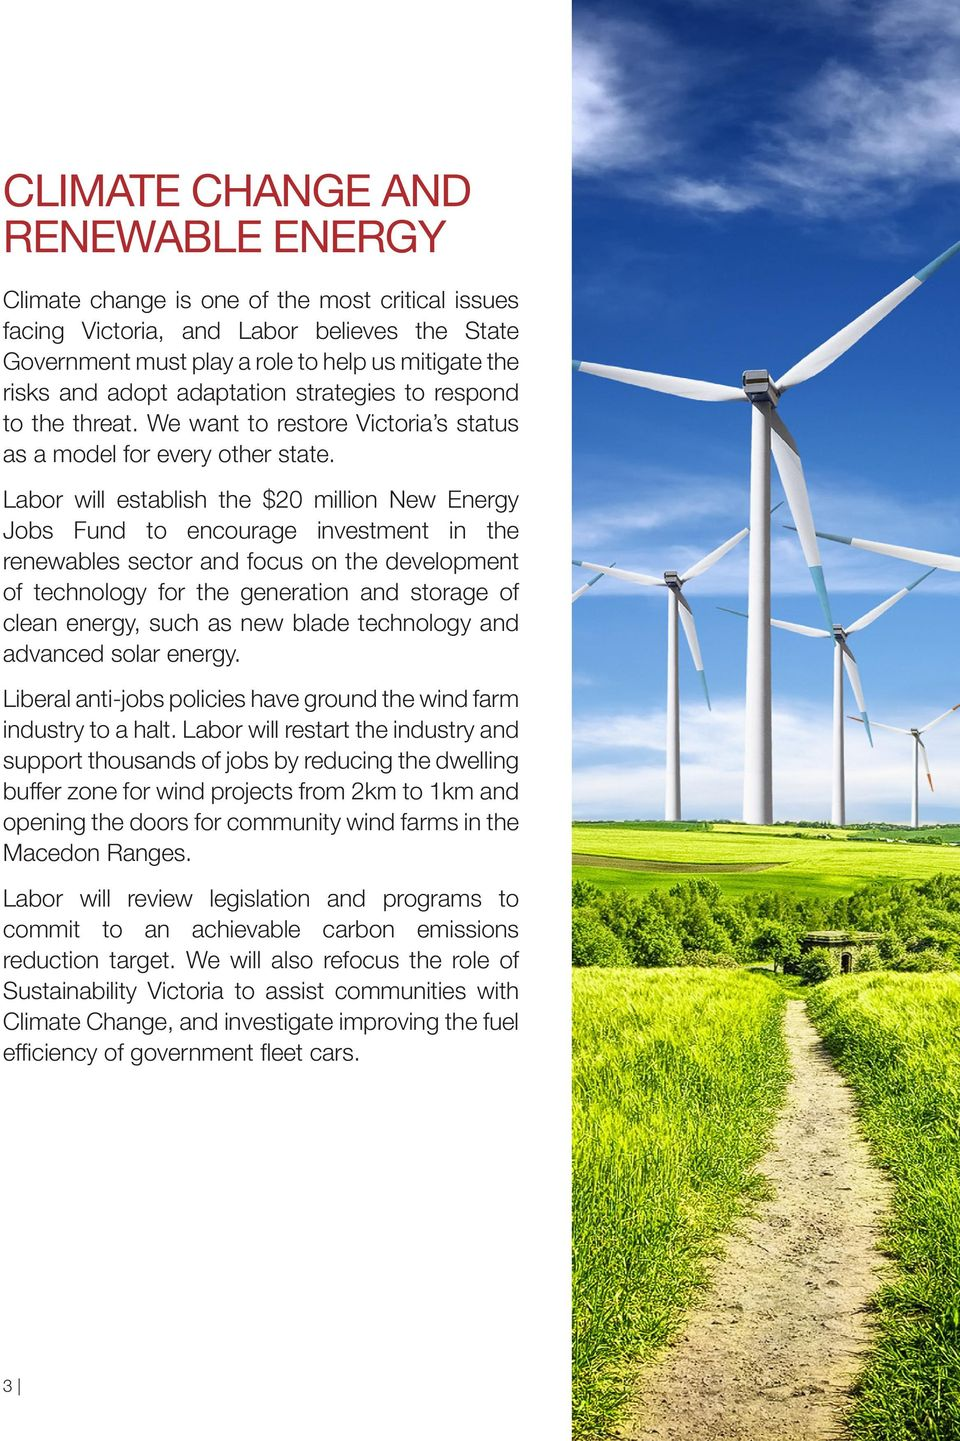 Labor will establish the $20 million New Energy Jobs Fund to encourage investment in the renewables sector and focus on the development of technology for the generation and storage of clean energy,